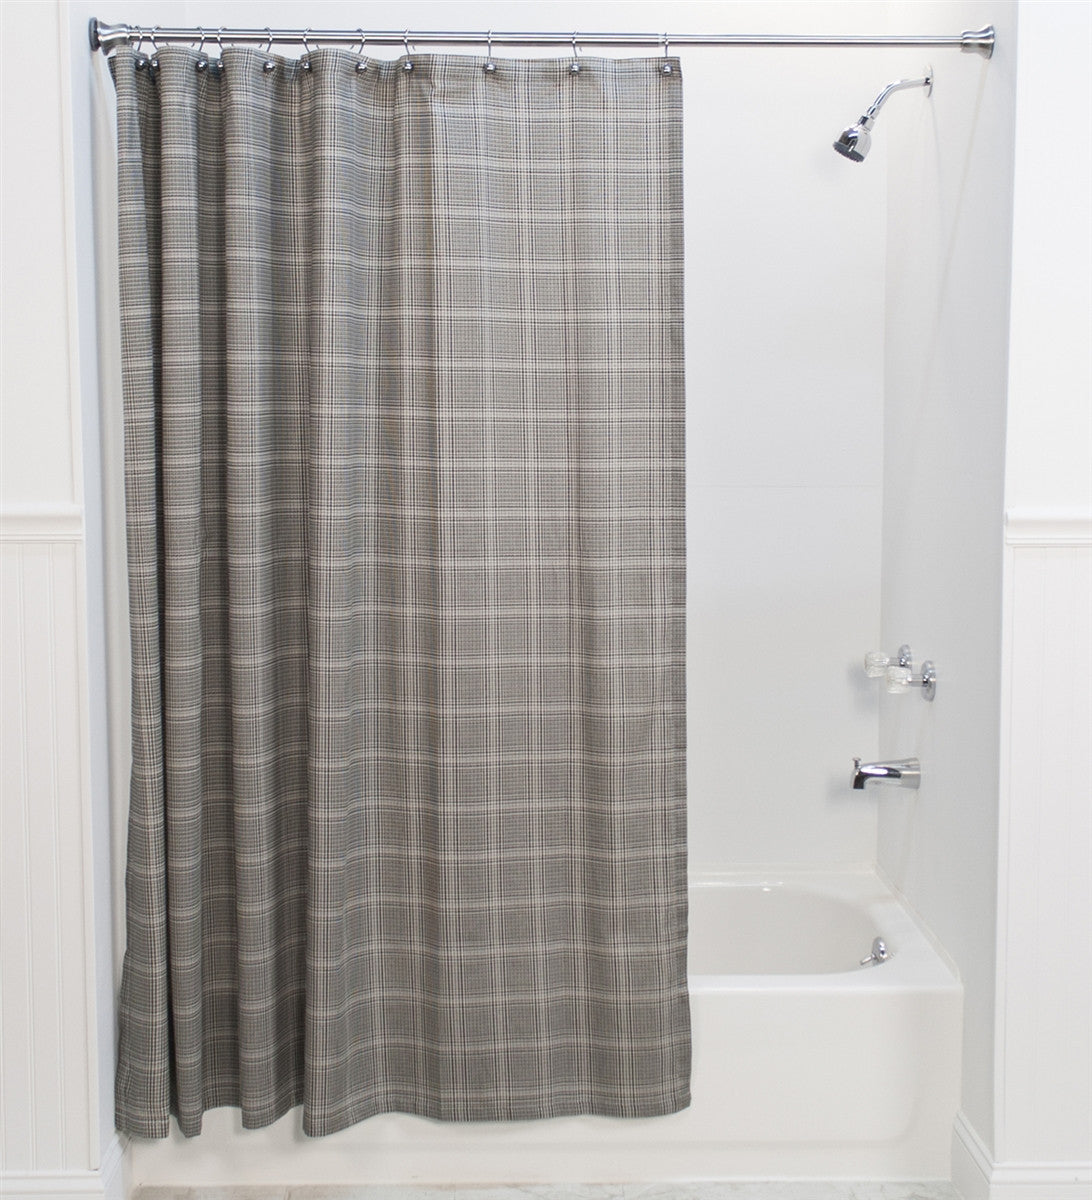 Coordinating Fabric Shower Curtains and Window Curtains | Window ...